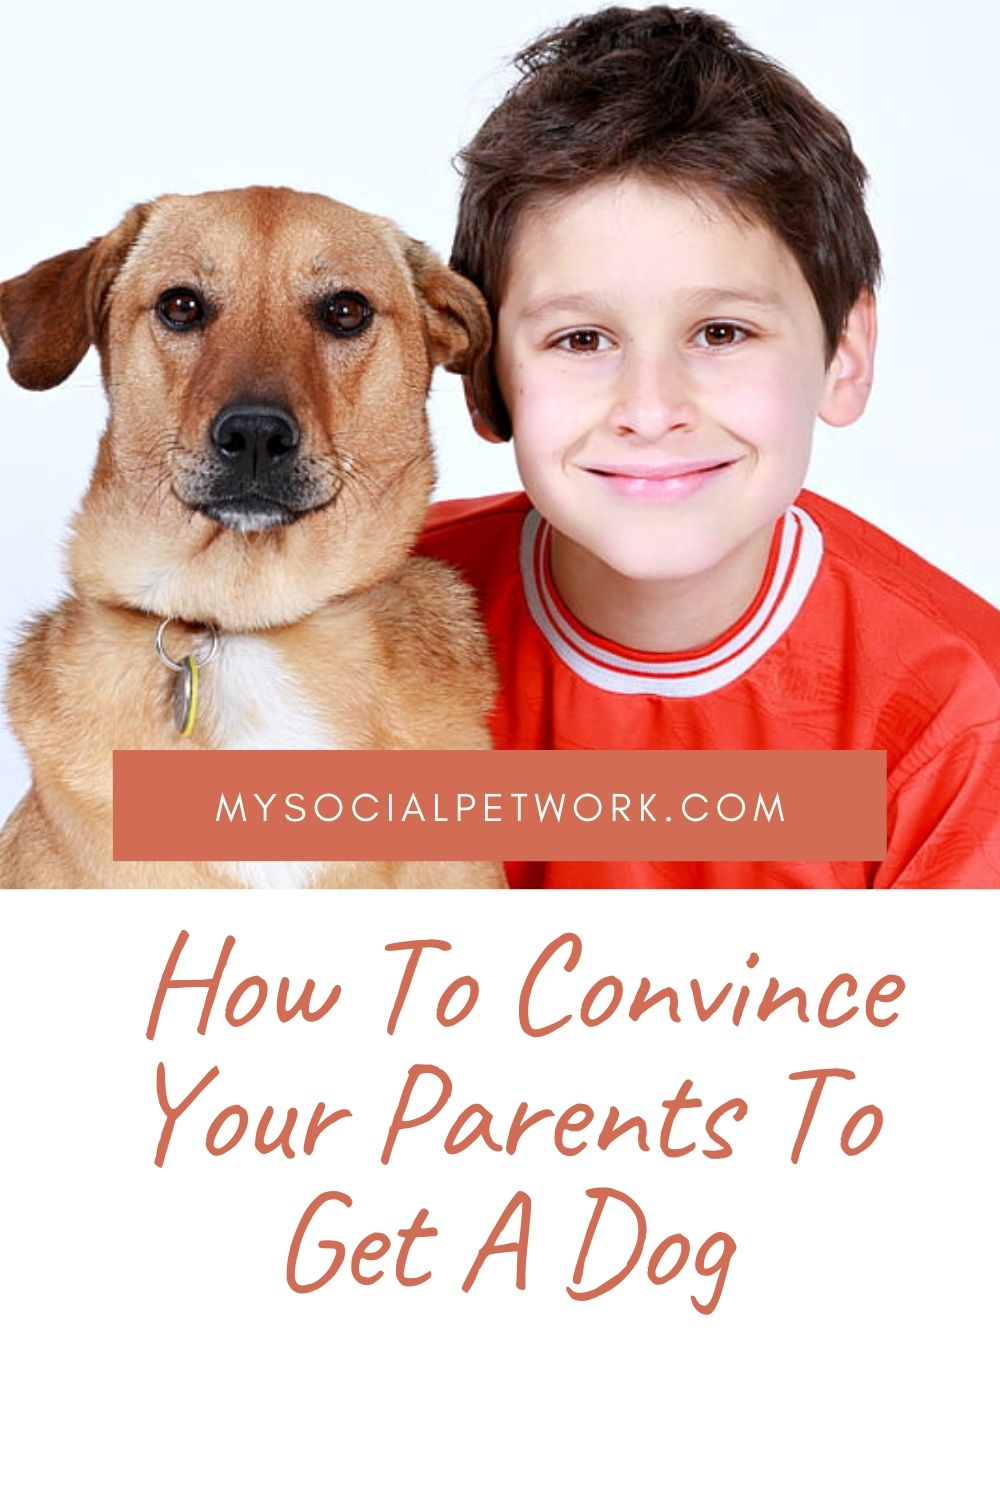 how-to-convince-your-parents-to-get-a-dog-5658976